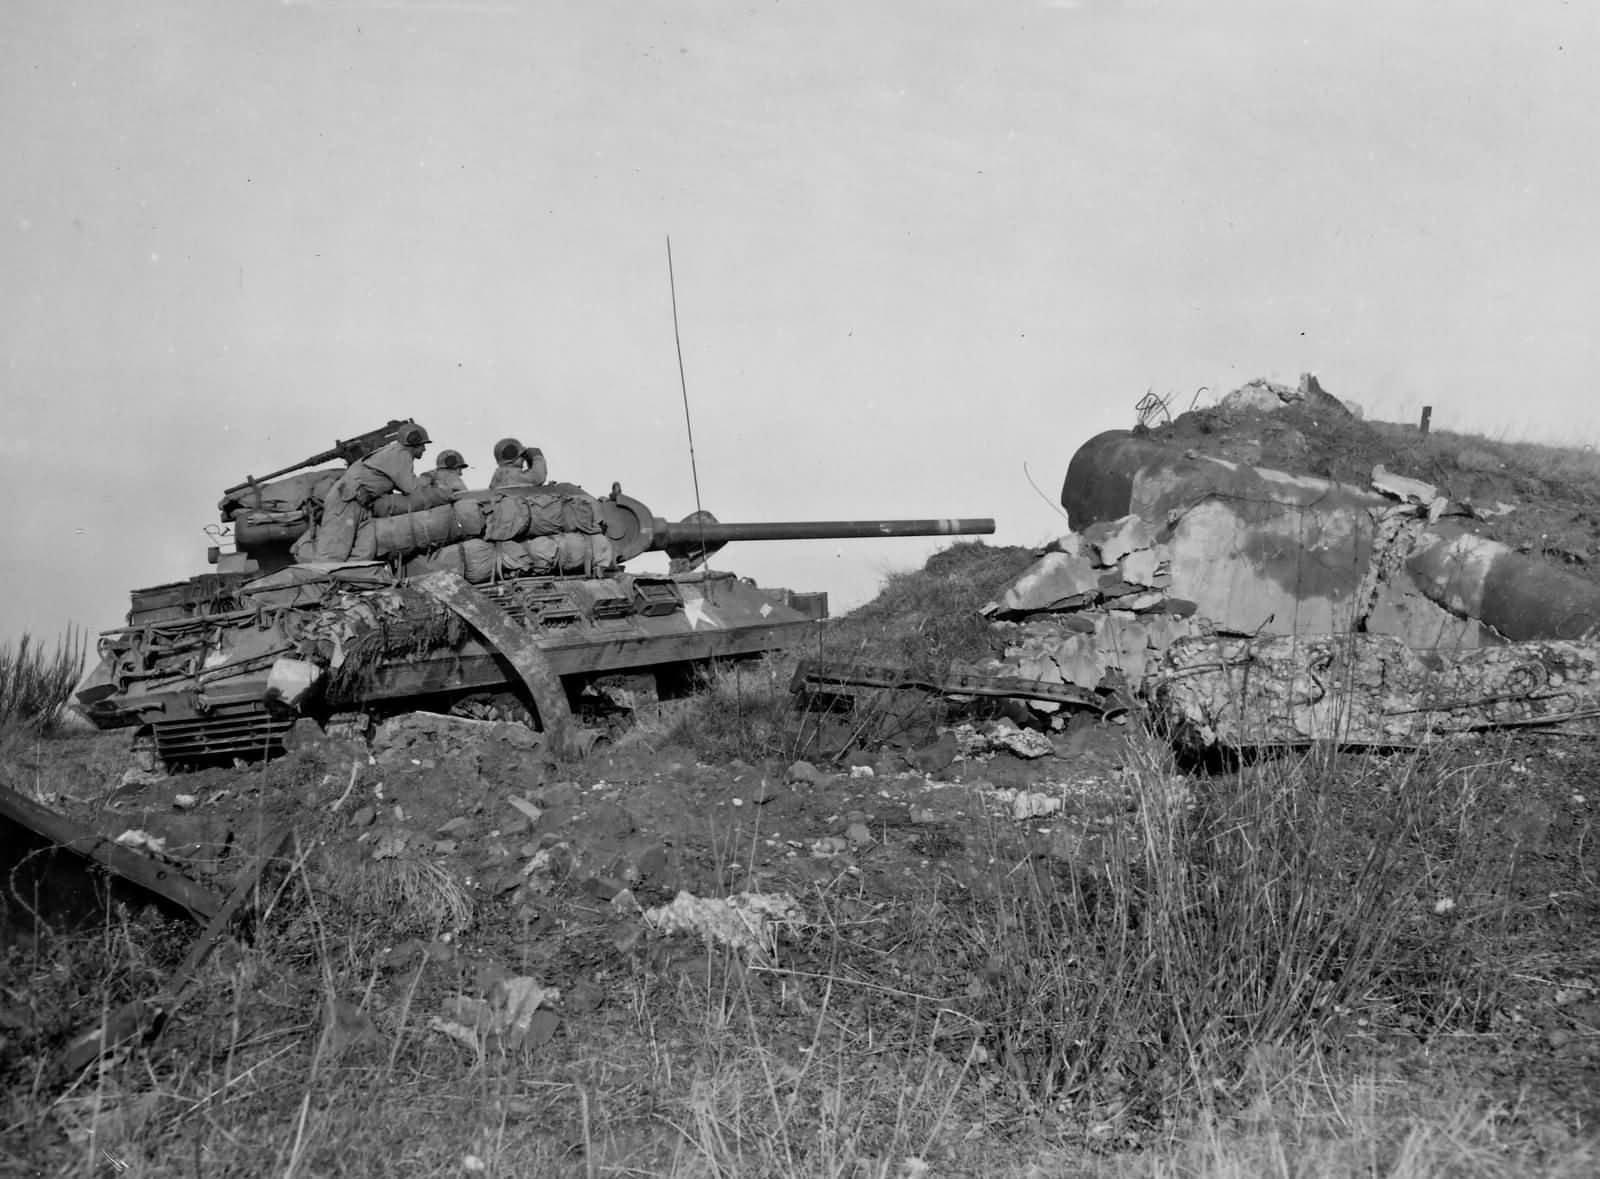 M36_Jackson_and_Maginot_Line_Pillbox_776th_Tank_Destroyer_Bn_Hottviller_France_1944